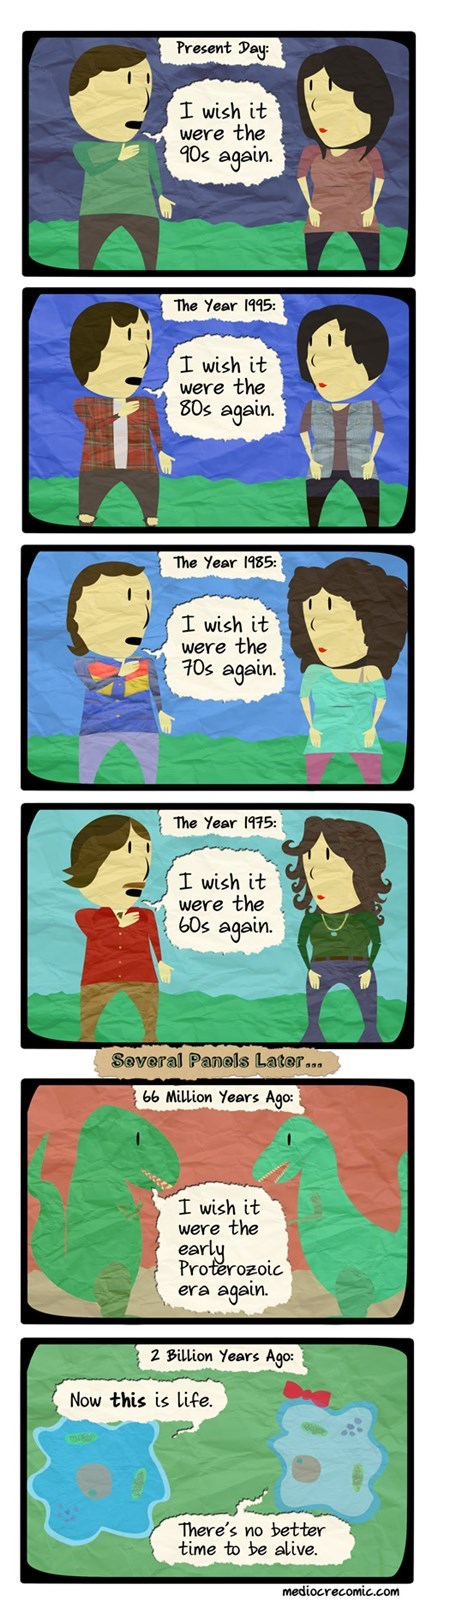 nostalgia yearning for the past funny web comics - 7831931392